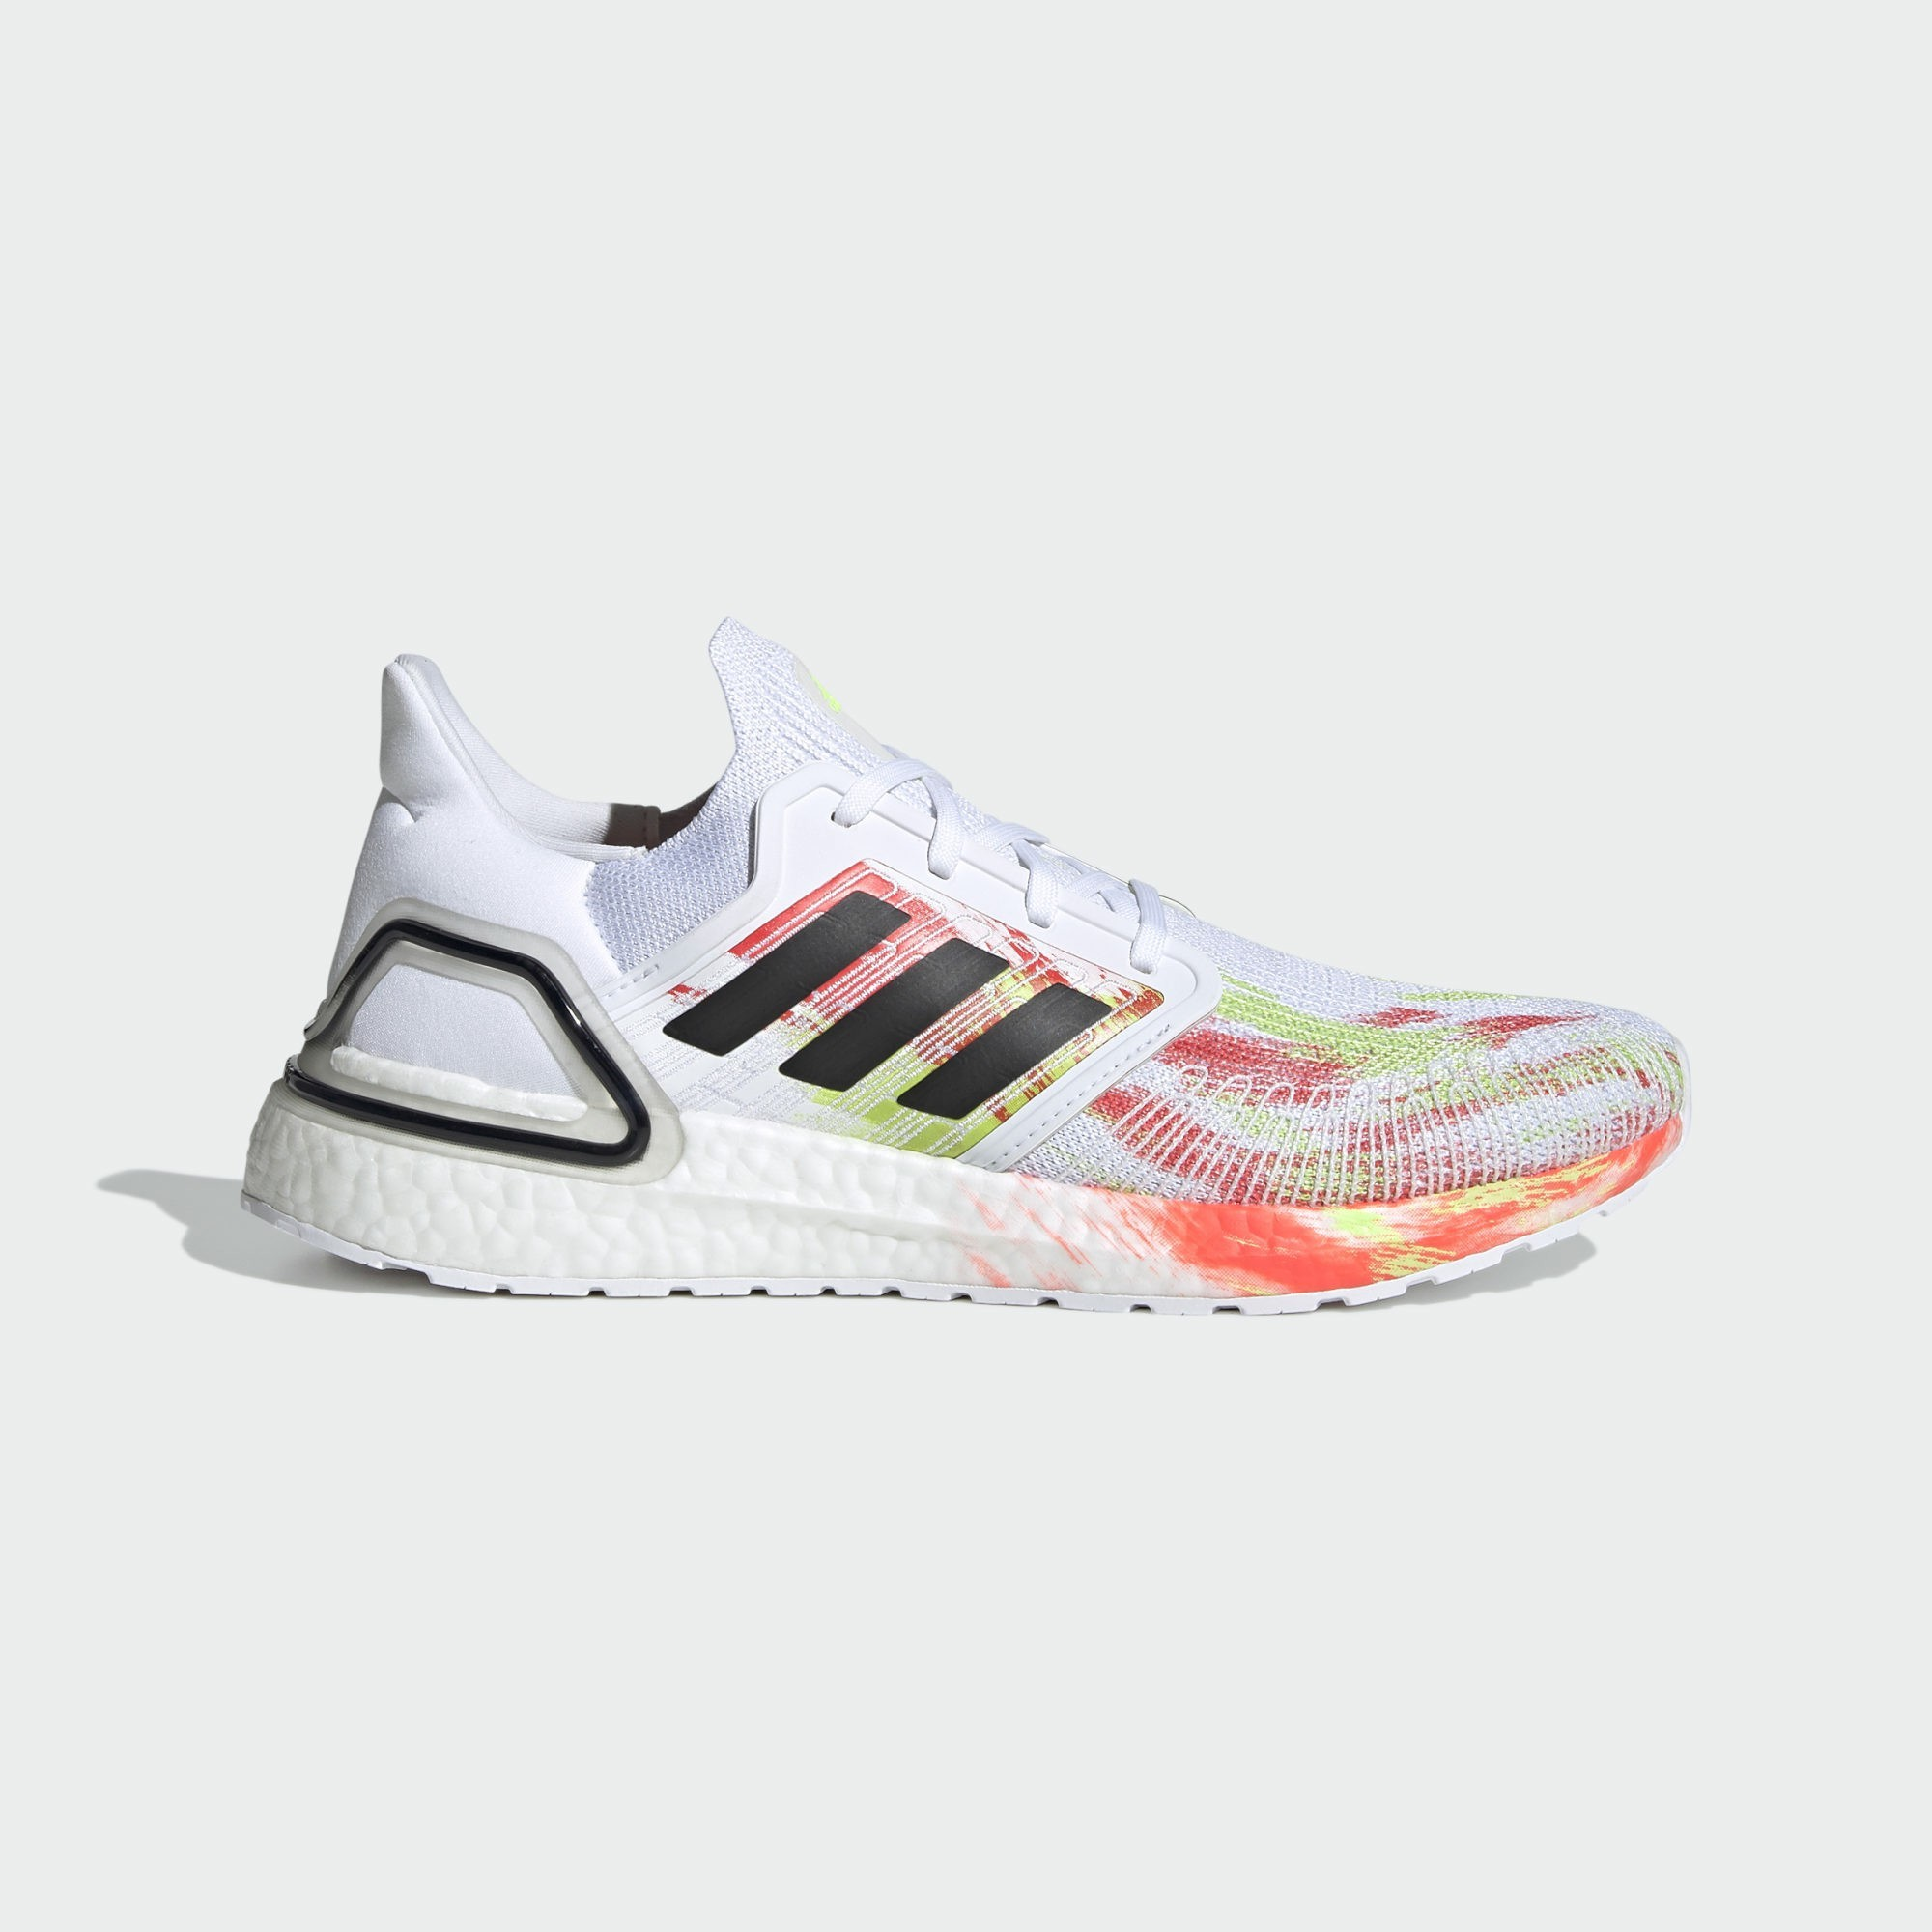 Adidas UltraBoost 20 FW8169 White/Black/Signal Green